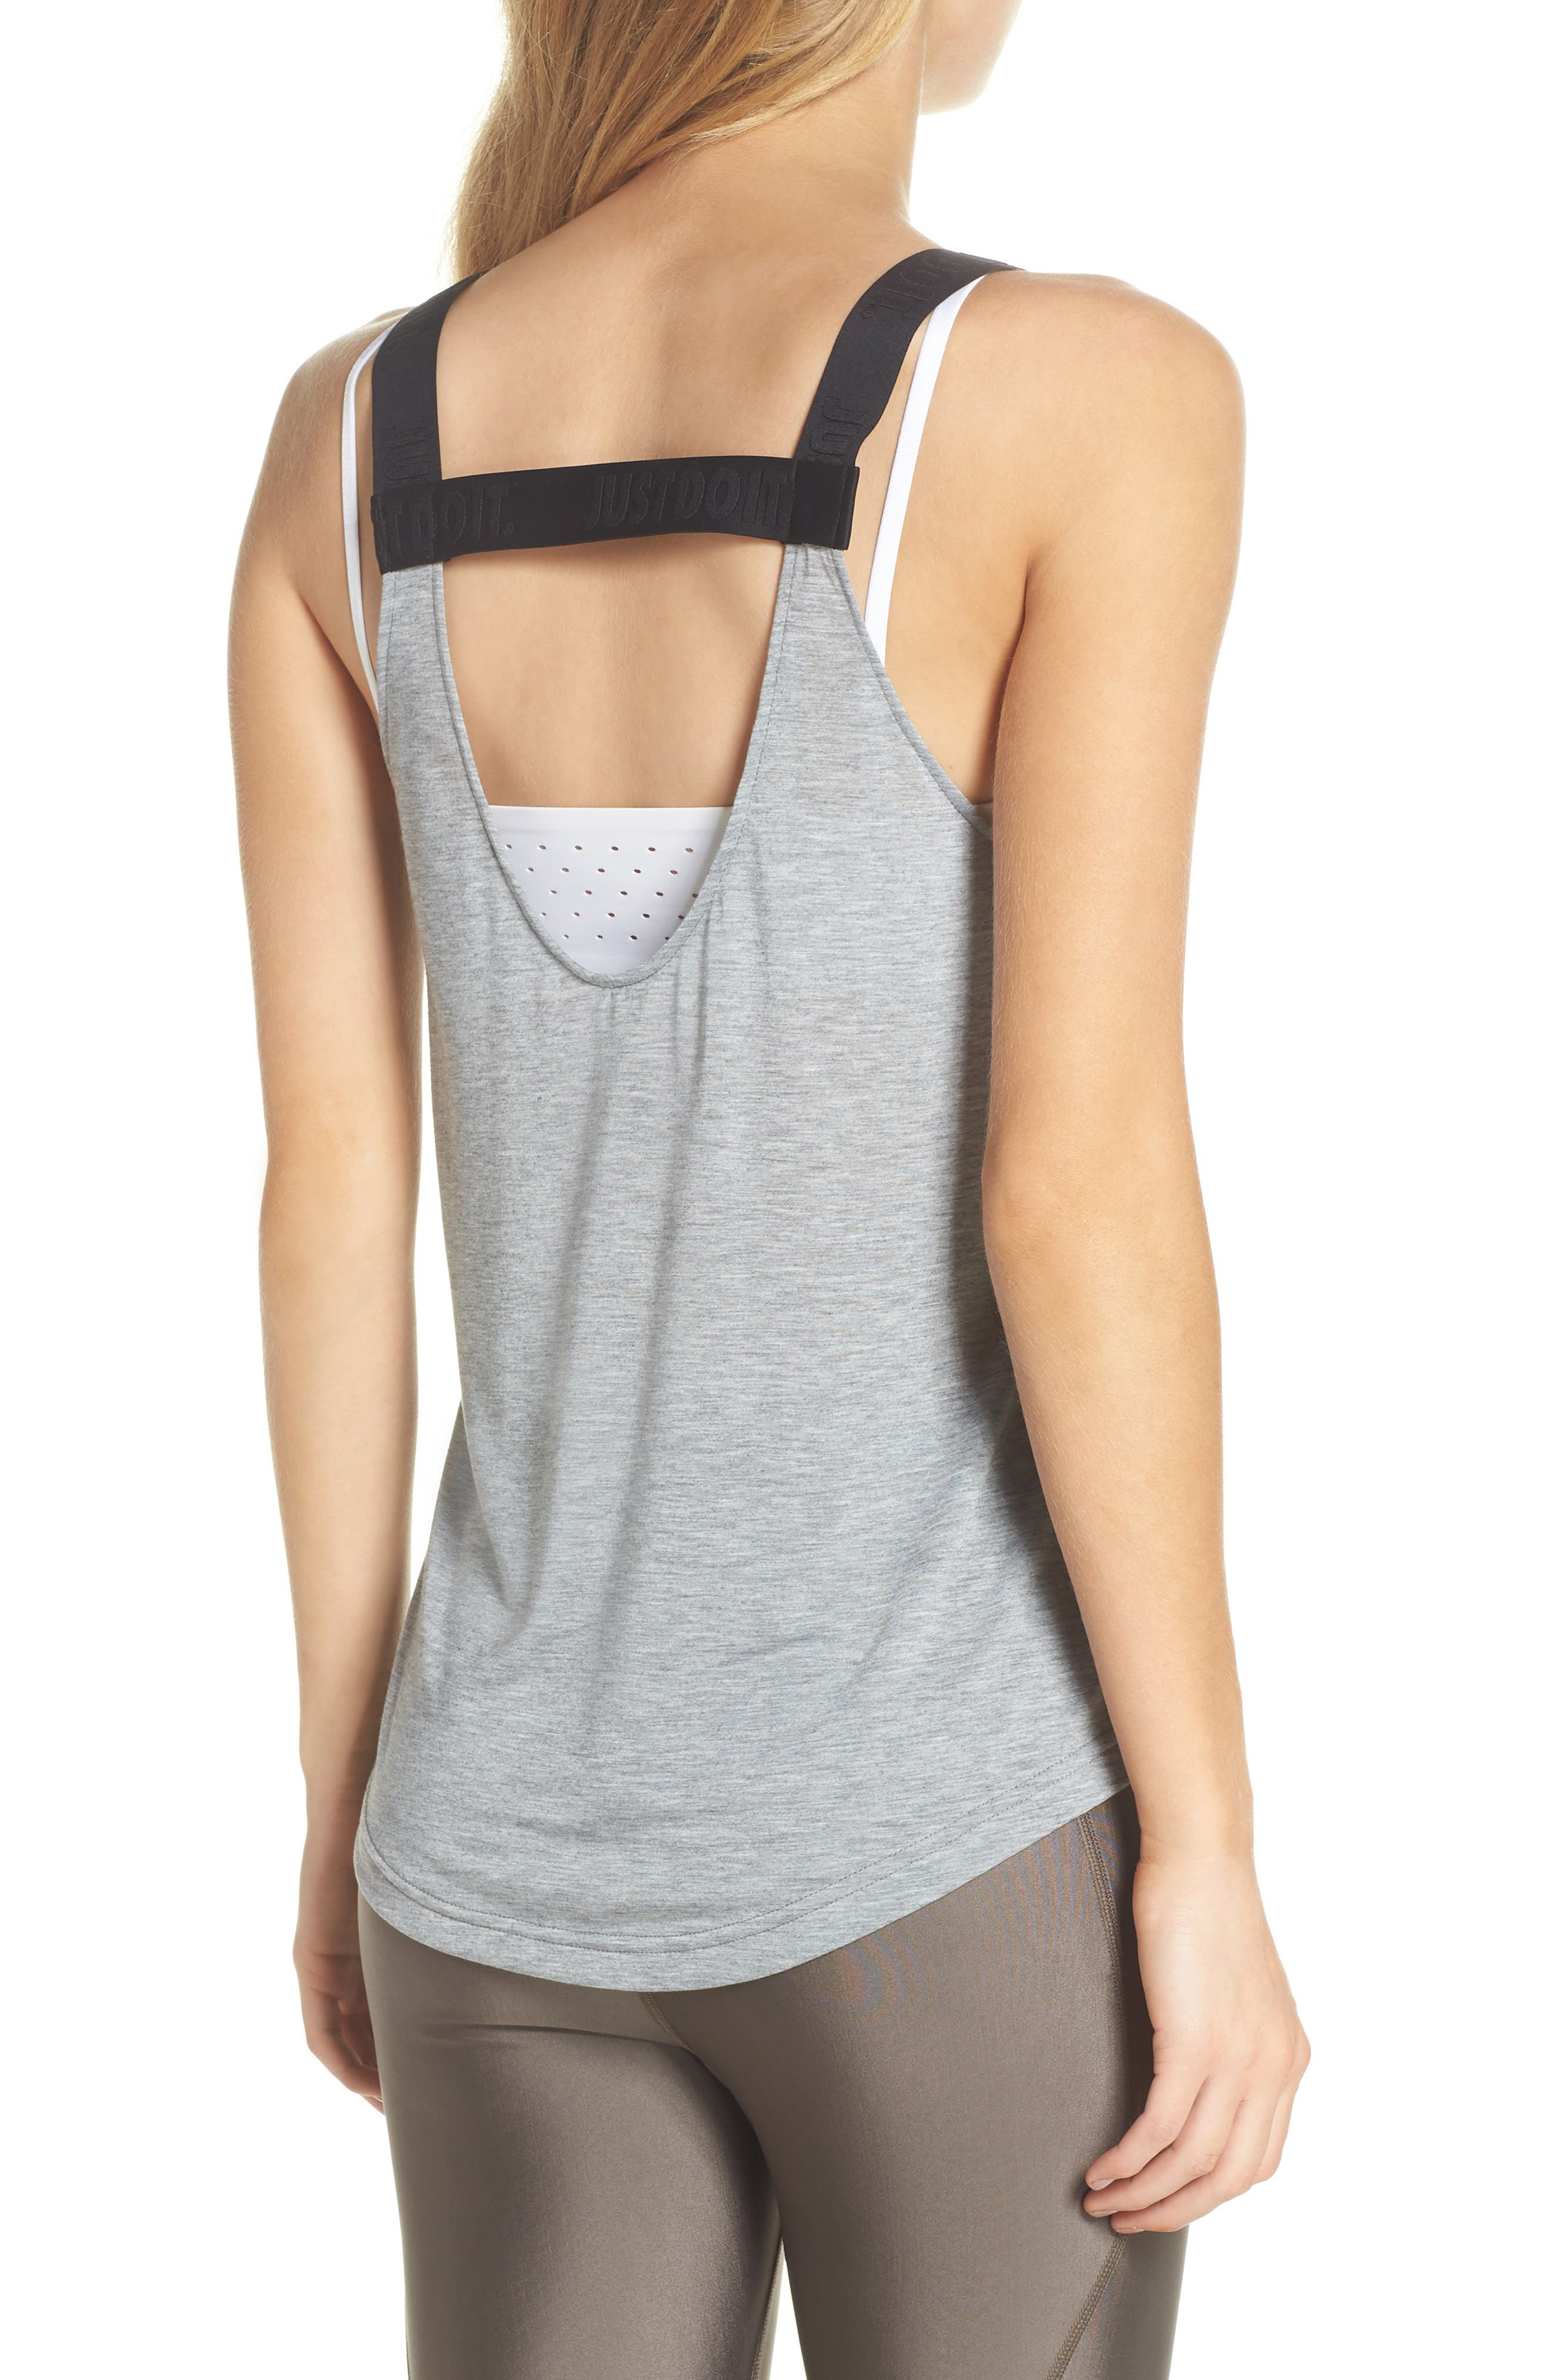 Breathe Elastika Tank,                             Alternate thumbnail 2, color,                             Carbon Heather/ Black/ Black